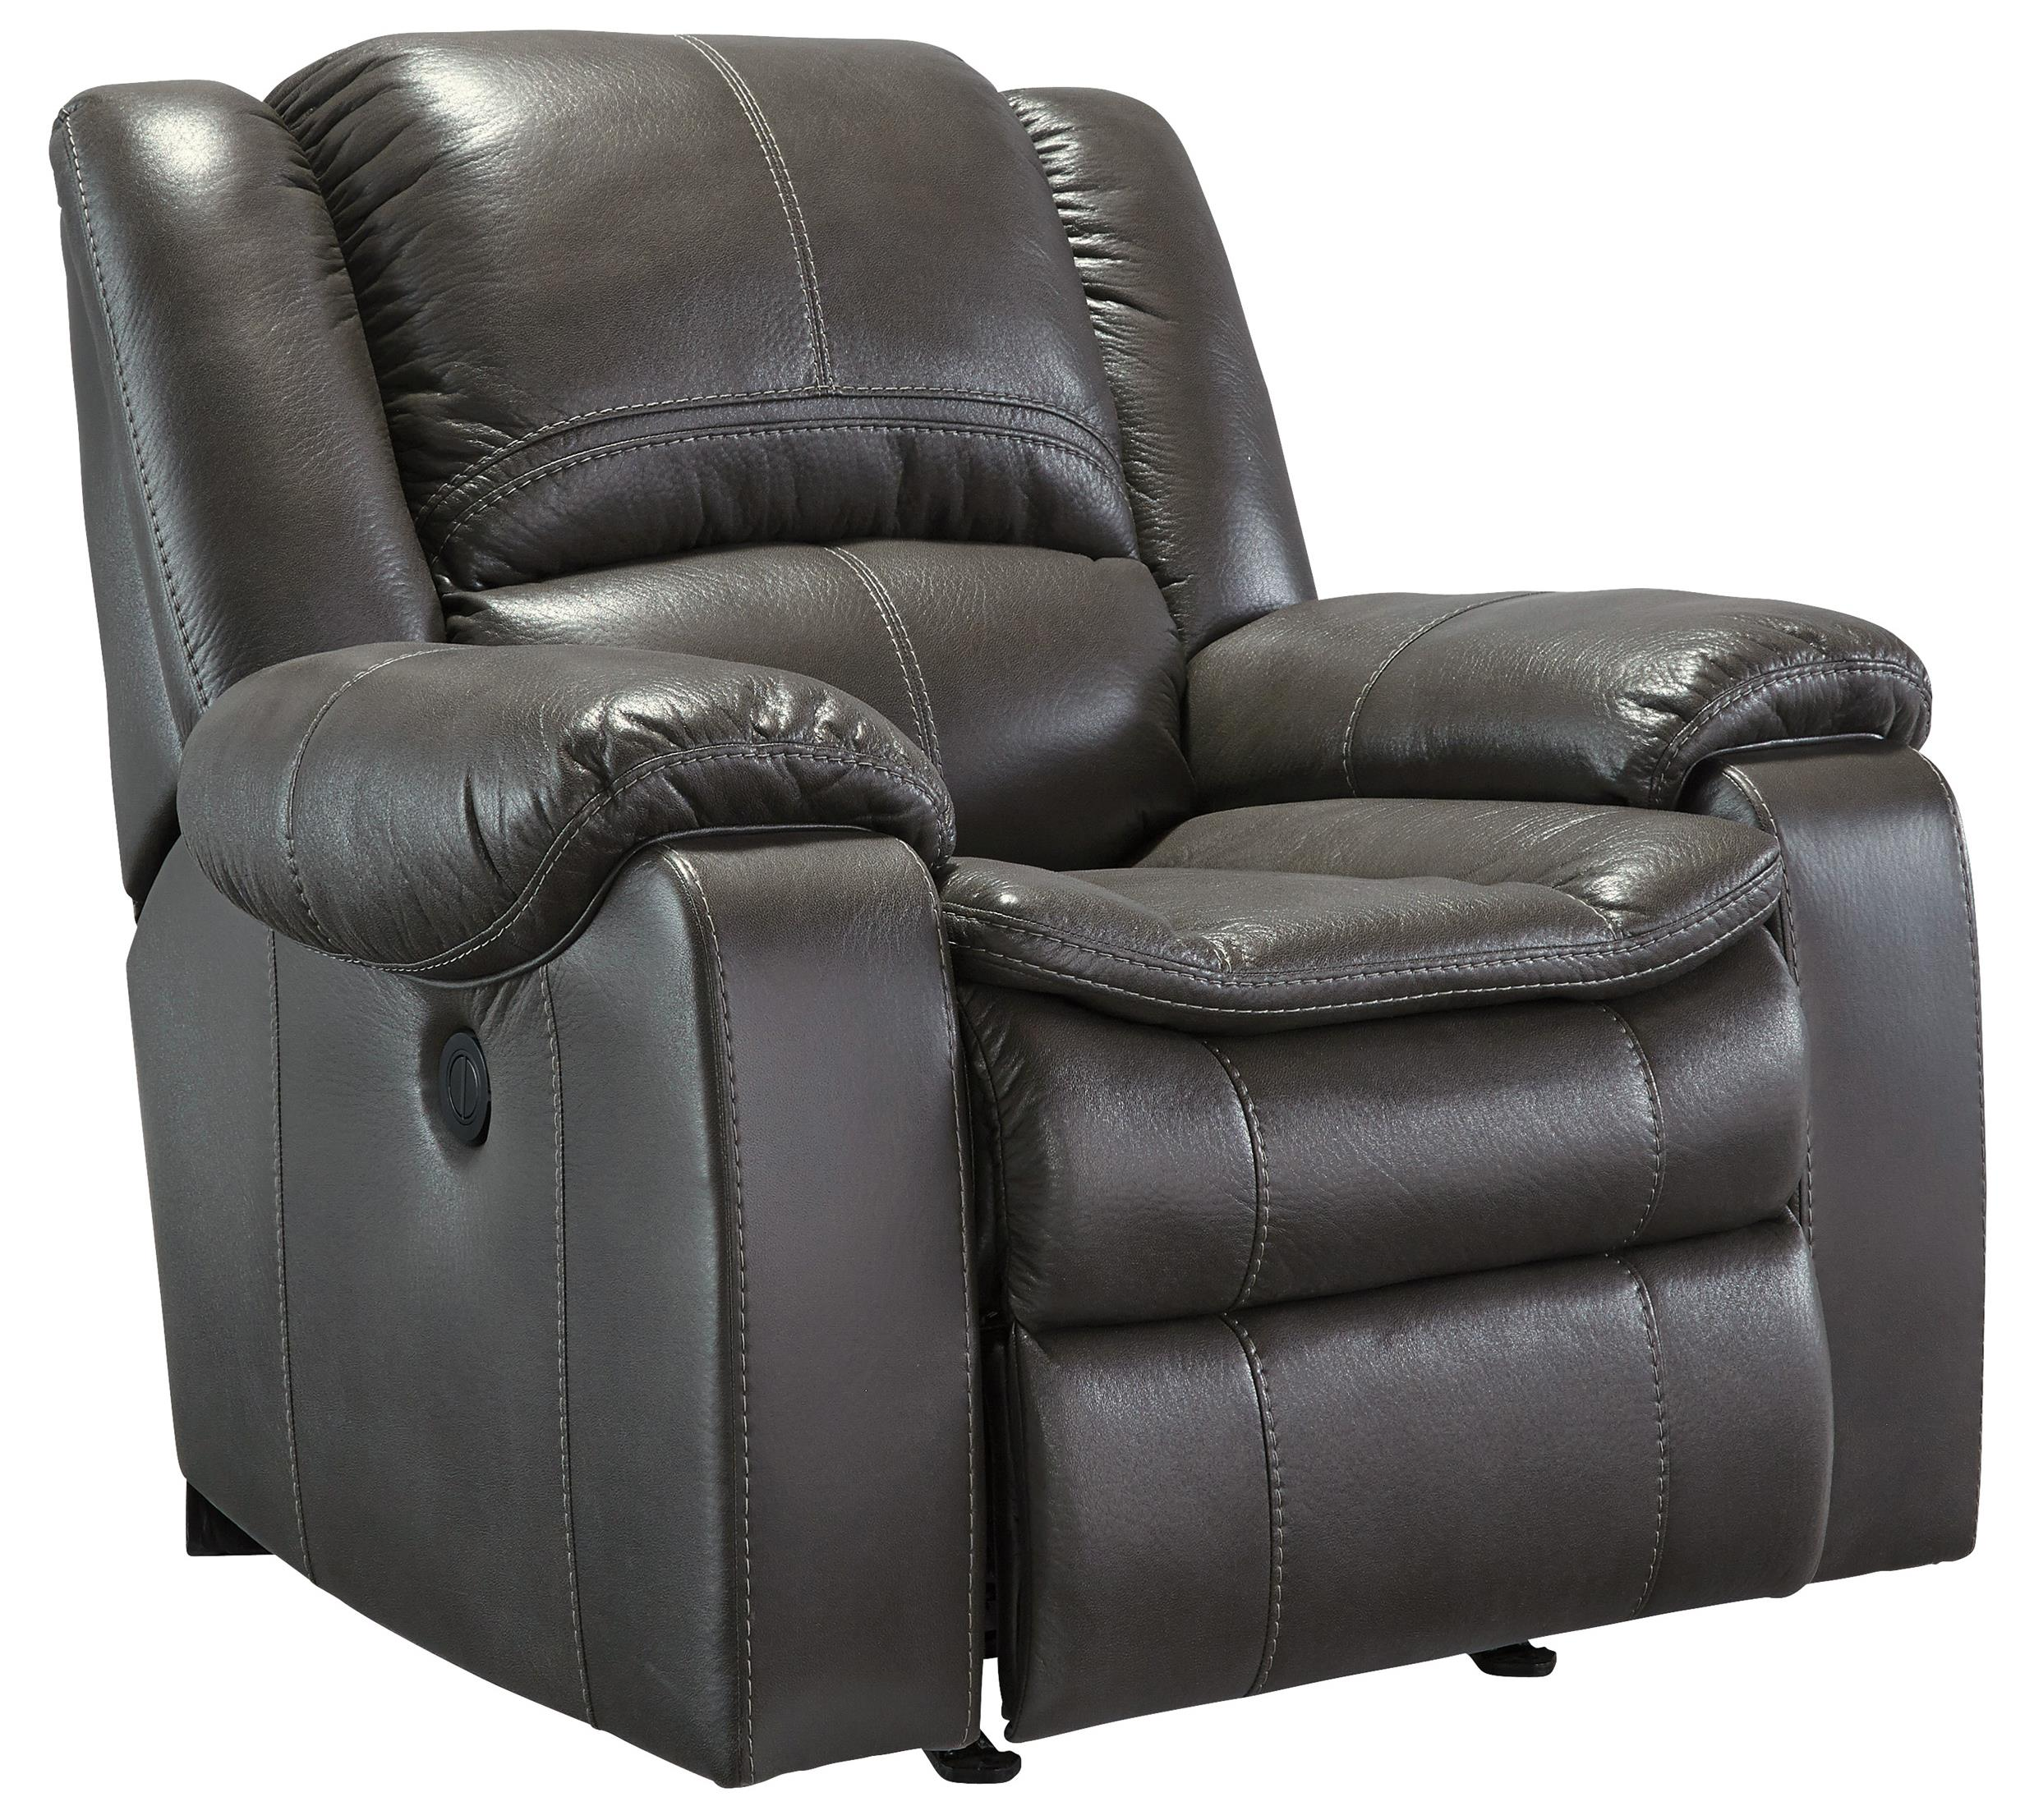 Signature Design by Ashley Long Knight Power Rocker Recliner - Item Number: 8890698